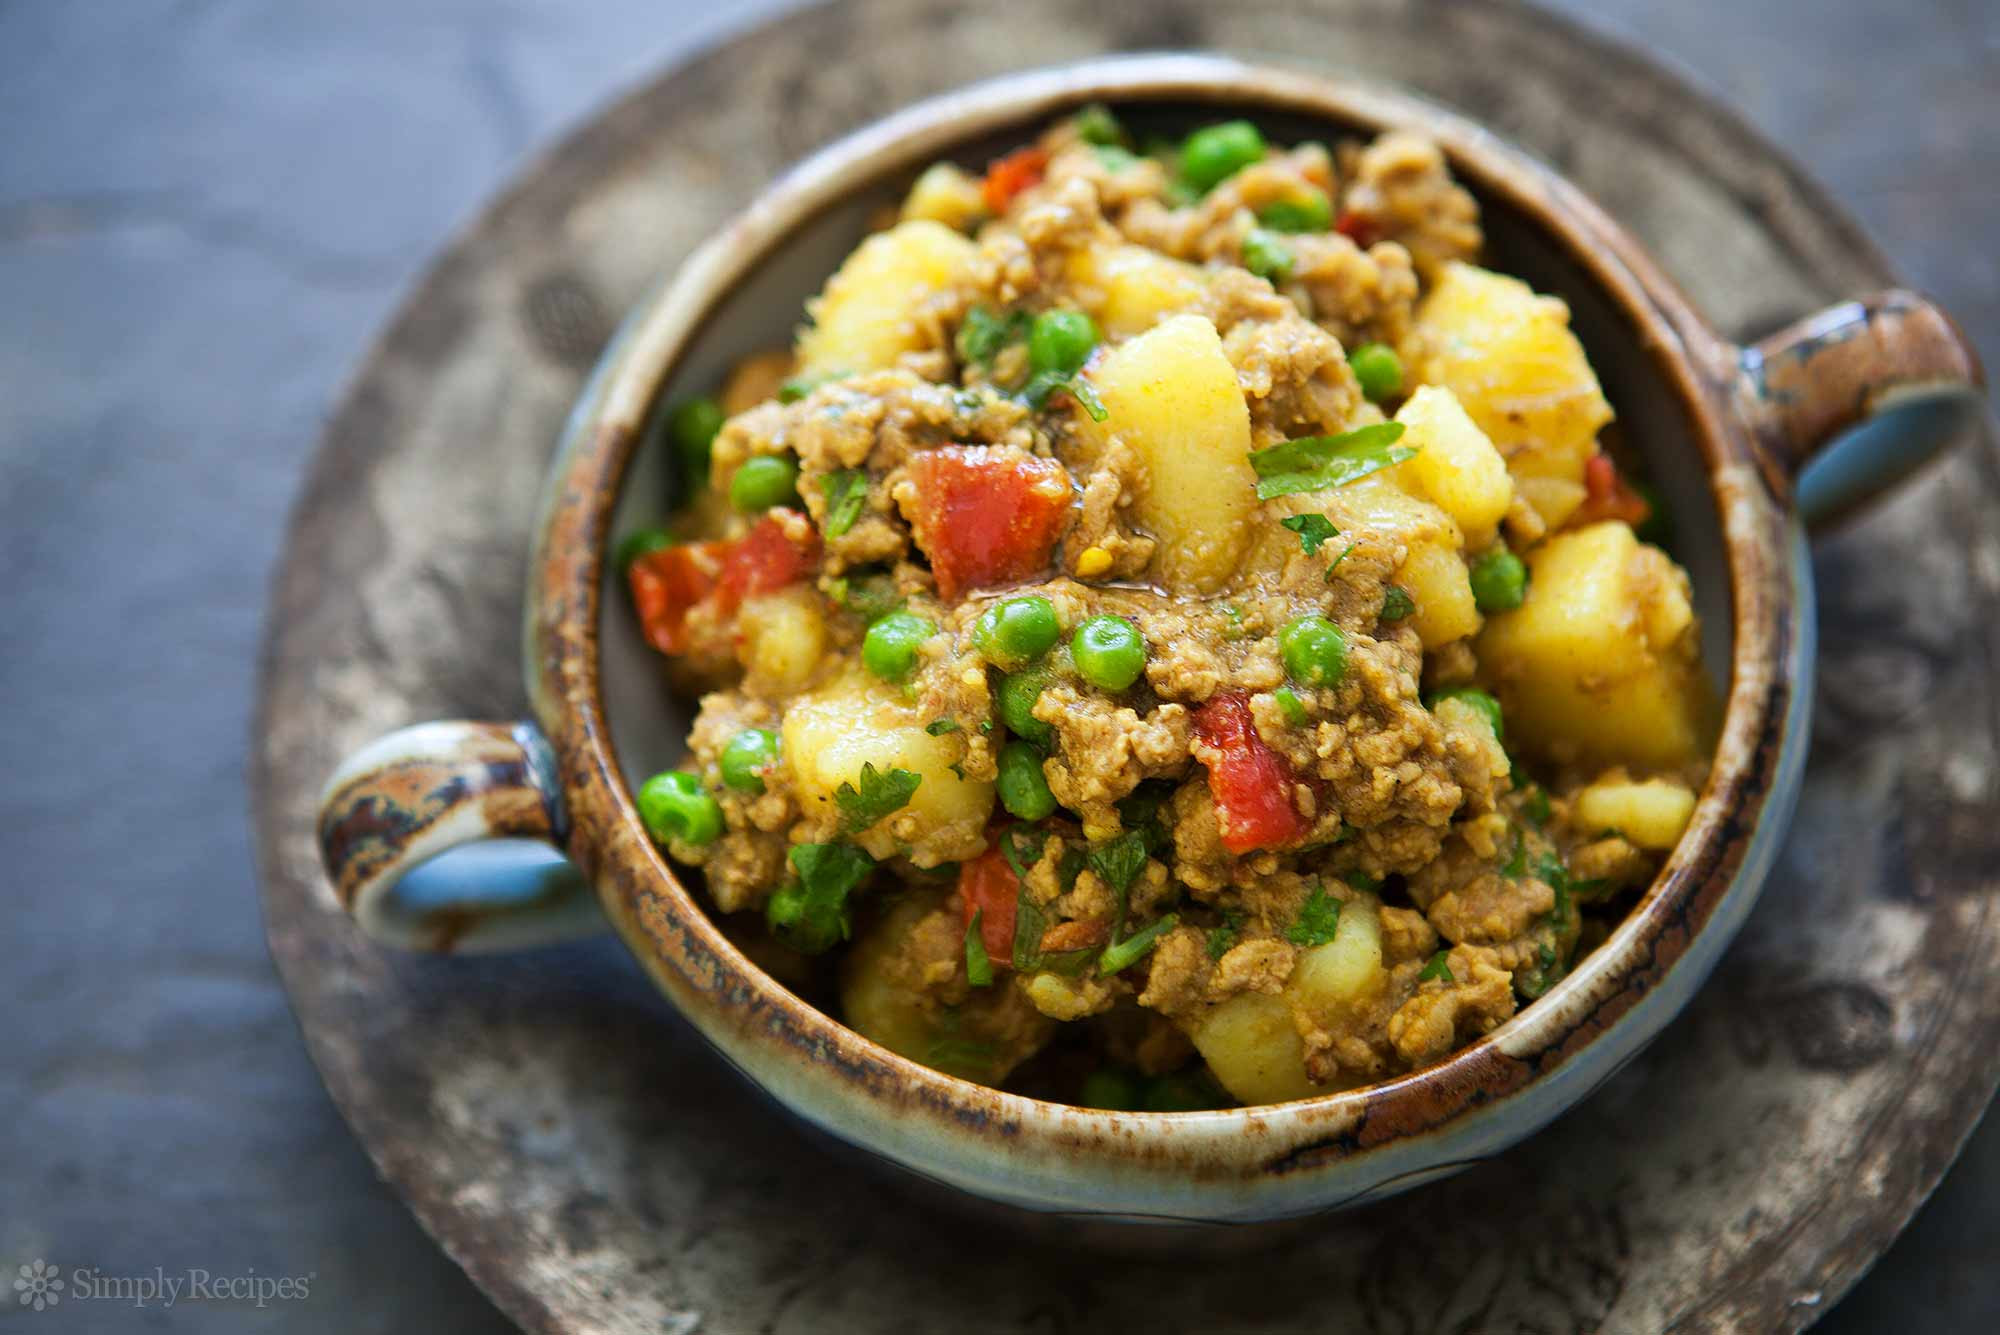 Ground Turkey Meat Recipies  Curried Ground Turkey with Potatoes Recipe